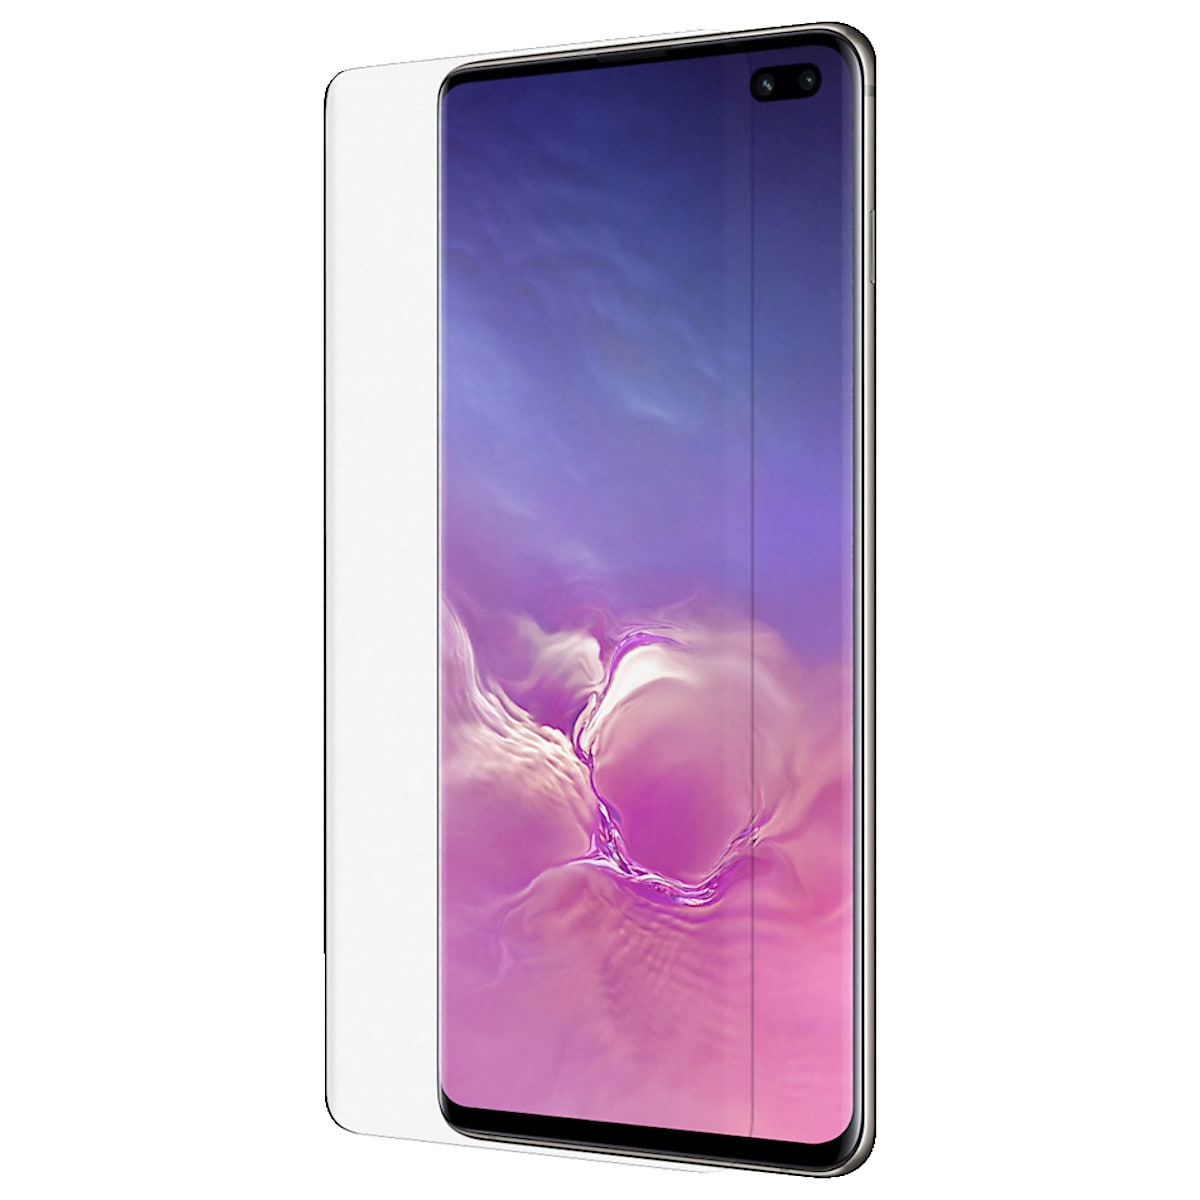 Belkin ScreenForce InvisiGlass Curve, skjermbeskytter for Samsung Galaxy S10+